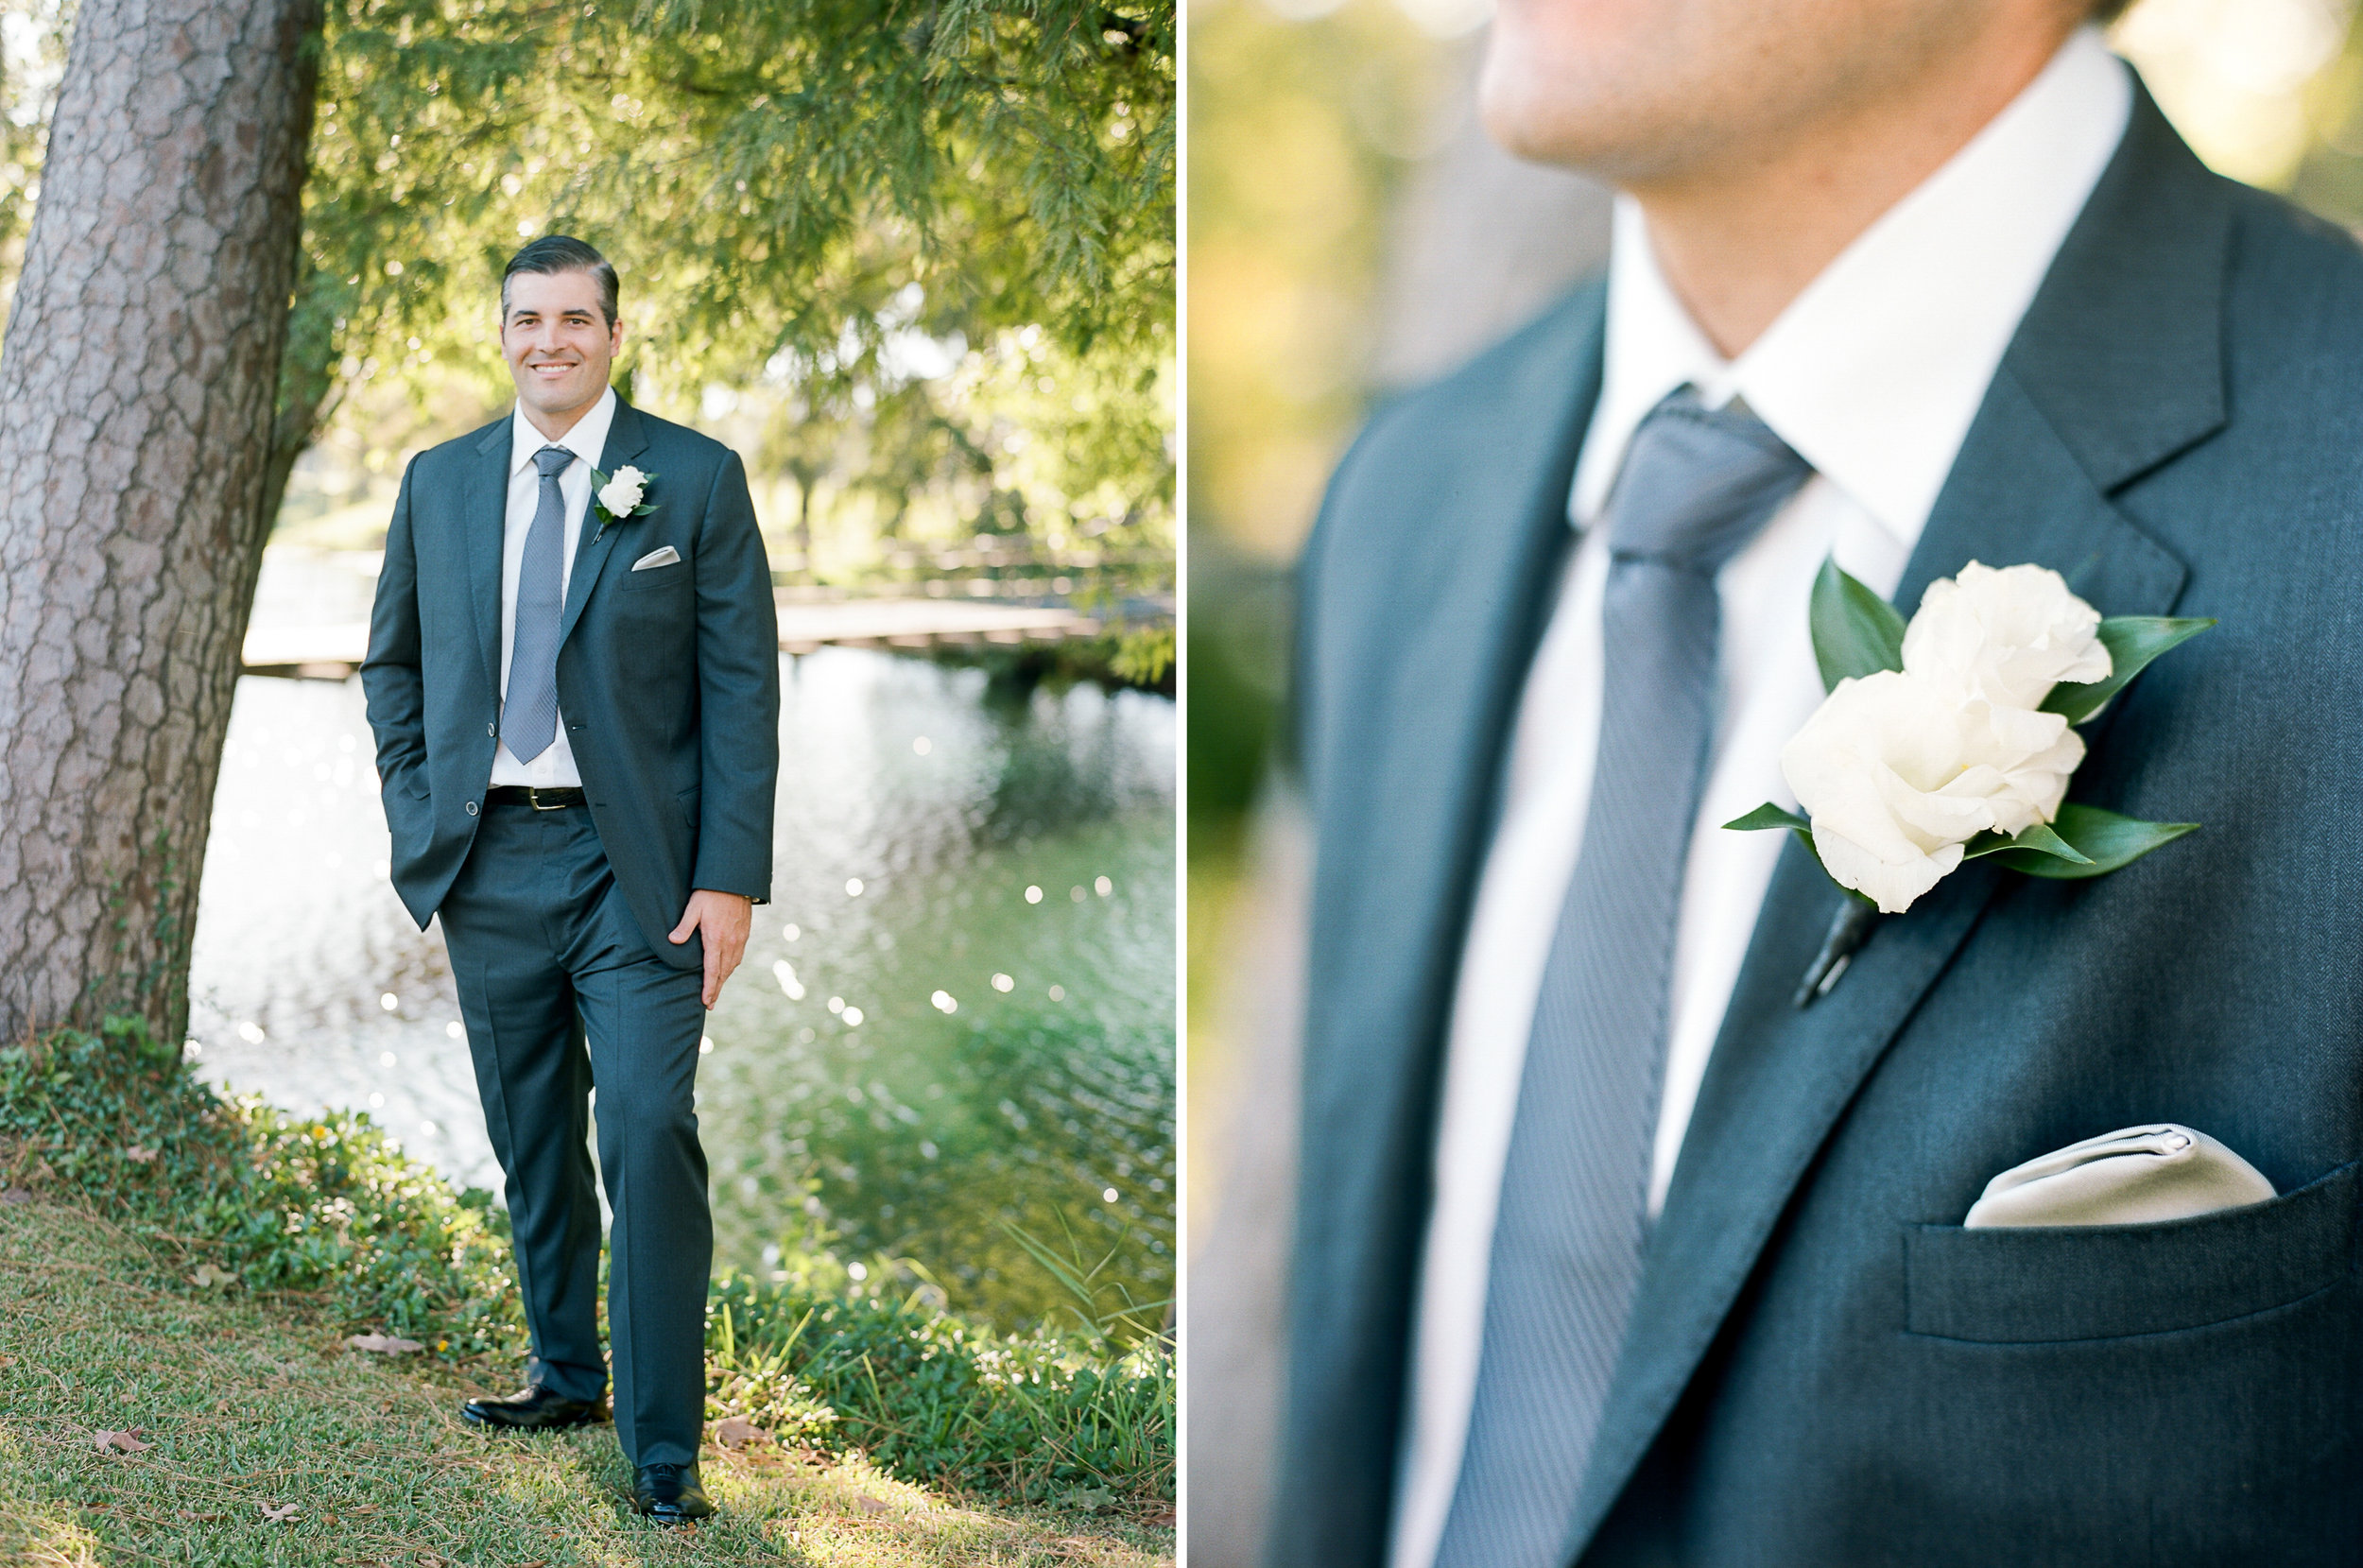 Houston-Wedding-Photographer-Lakeside-Country-Club-First-Look-Bride-Groom-Formals-Film-Fine-Art-Photography-104.jpg